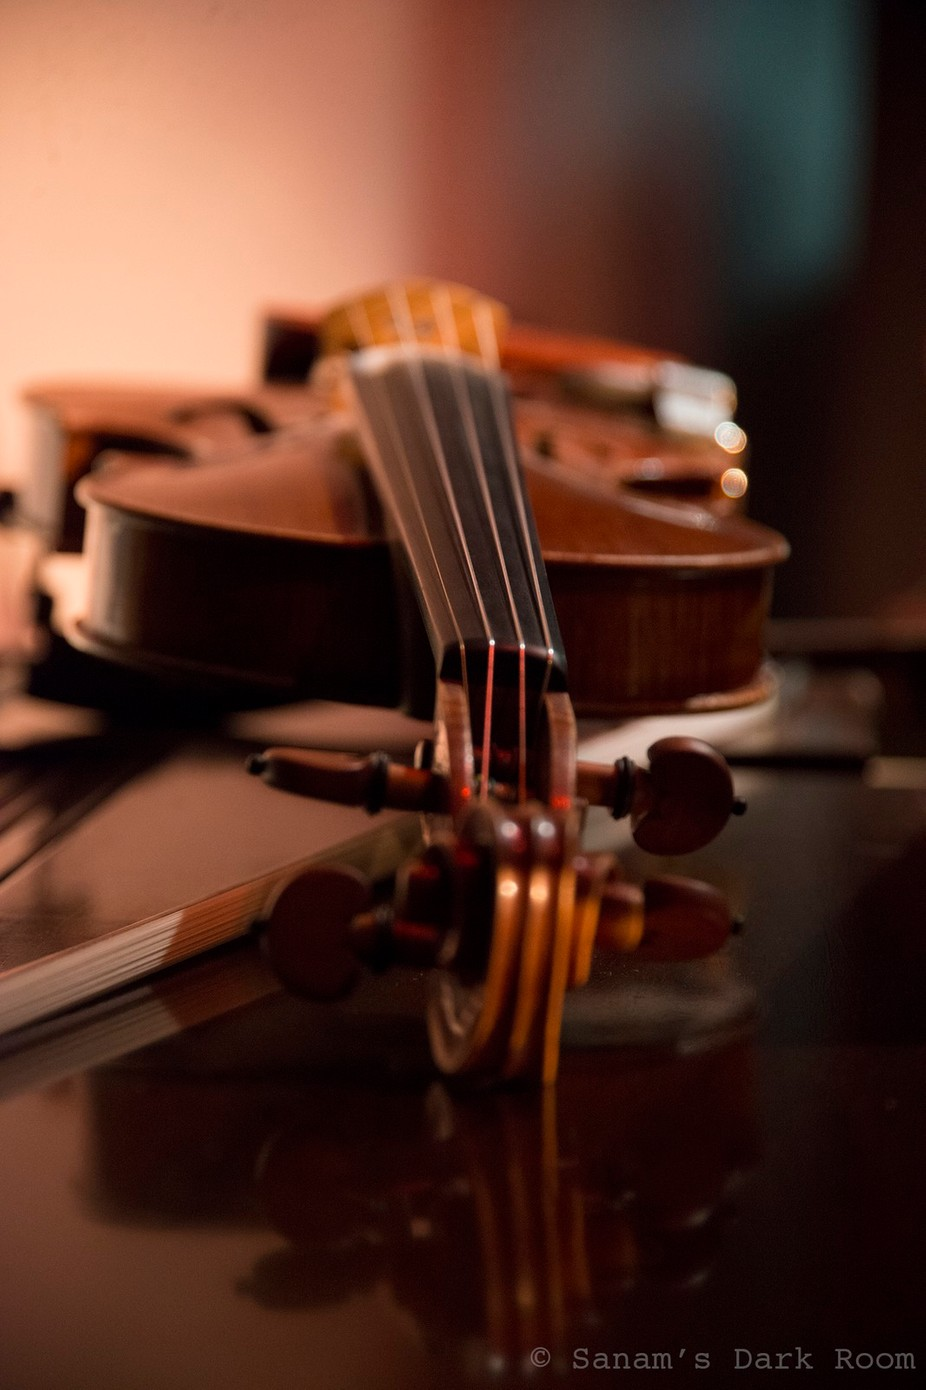 Violin by SanamsDarkRoom - Musical Instruments Photo Contest